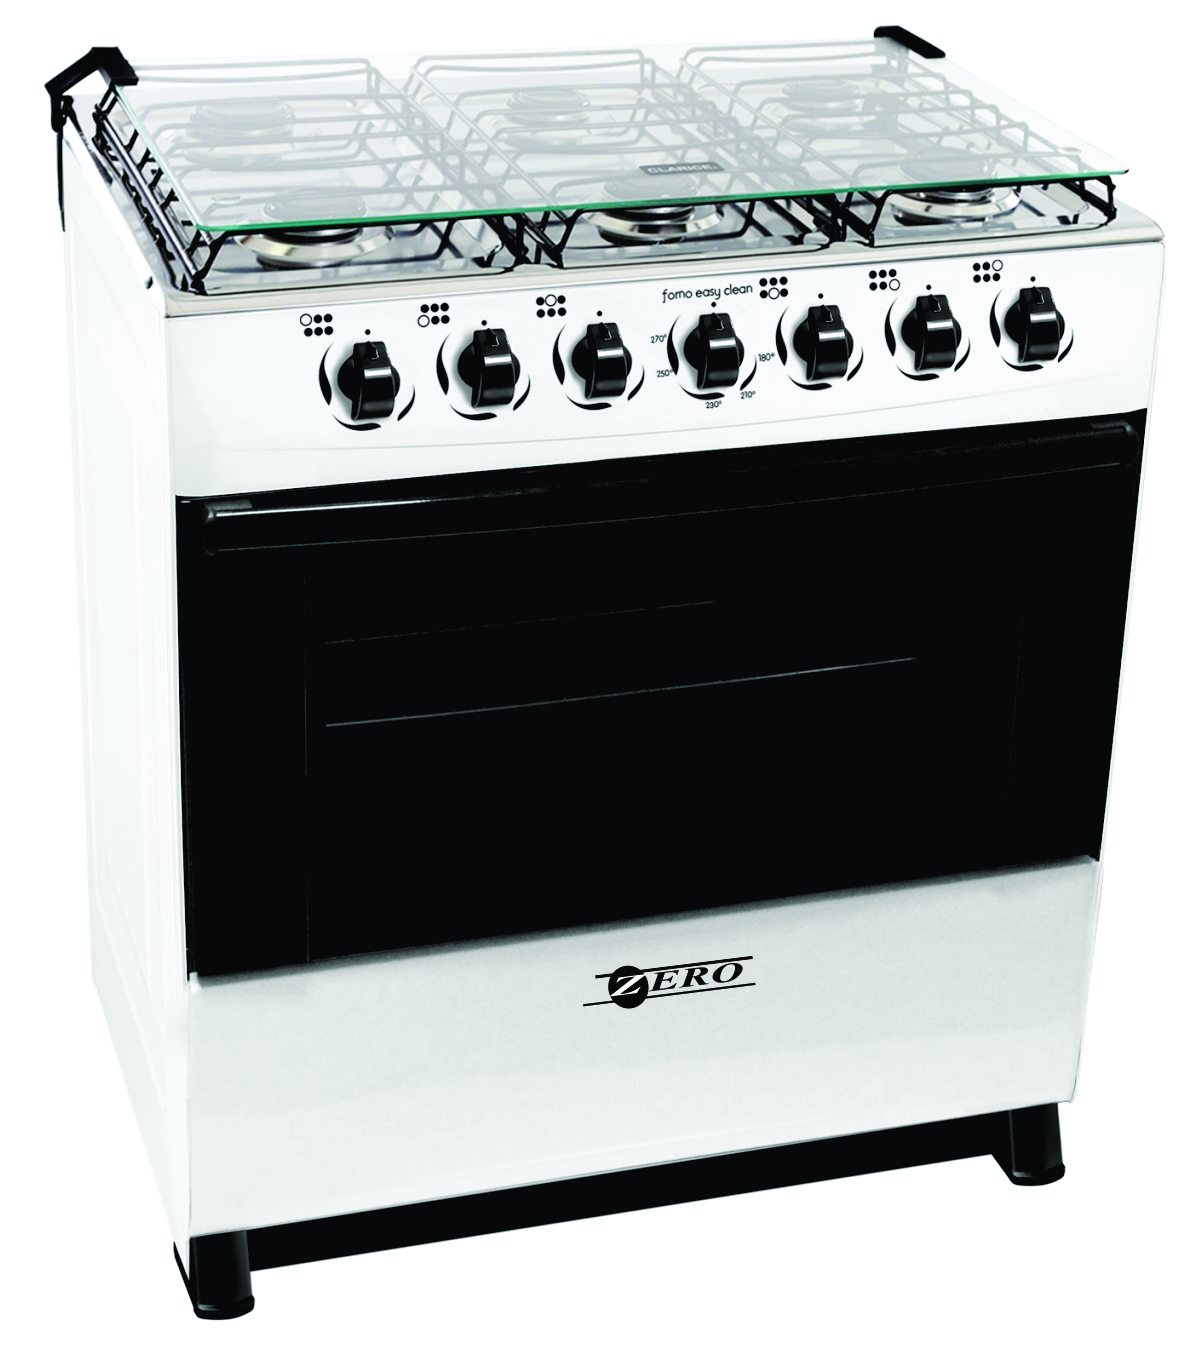 zero-6-burner-gas-stove-with-ffd-on-all-functions